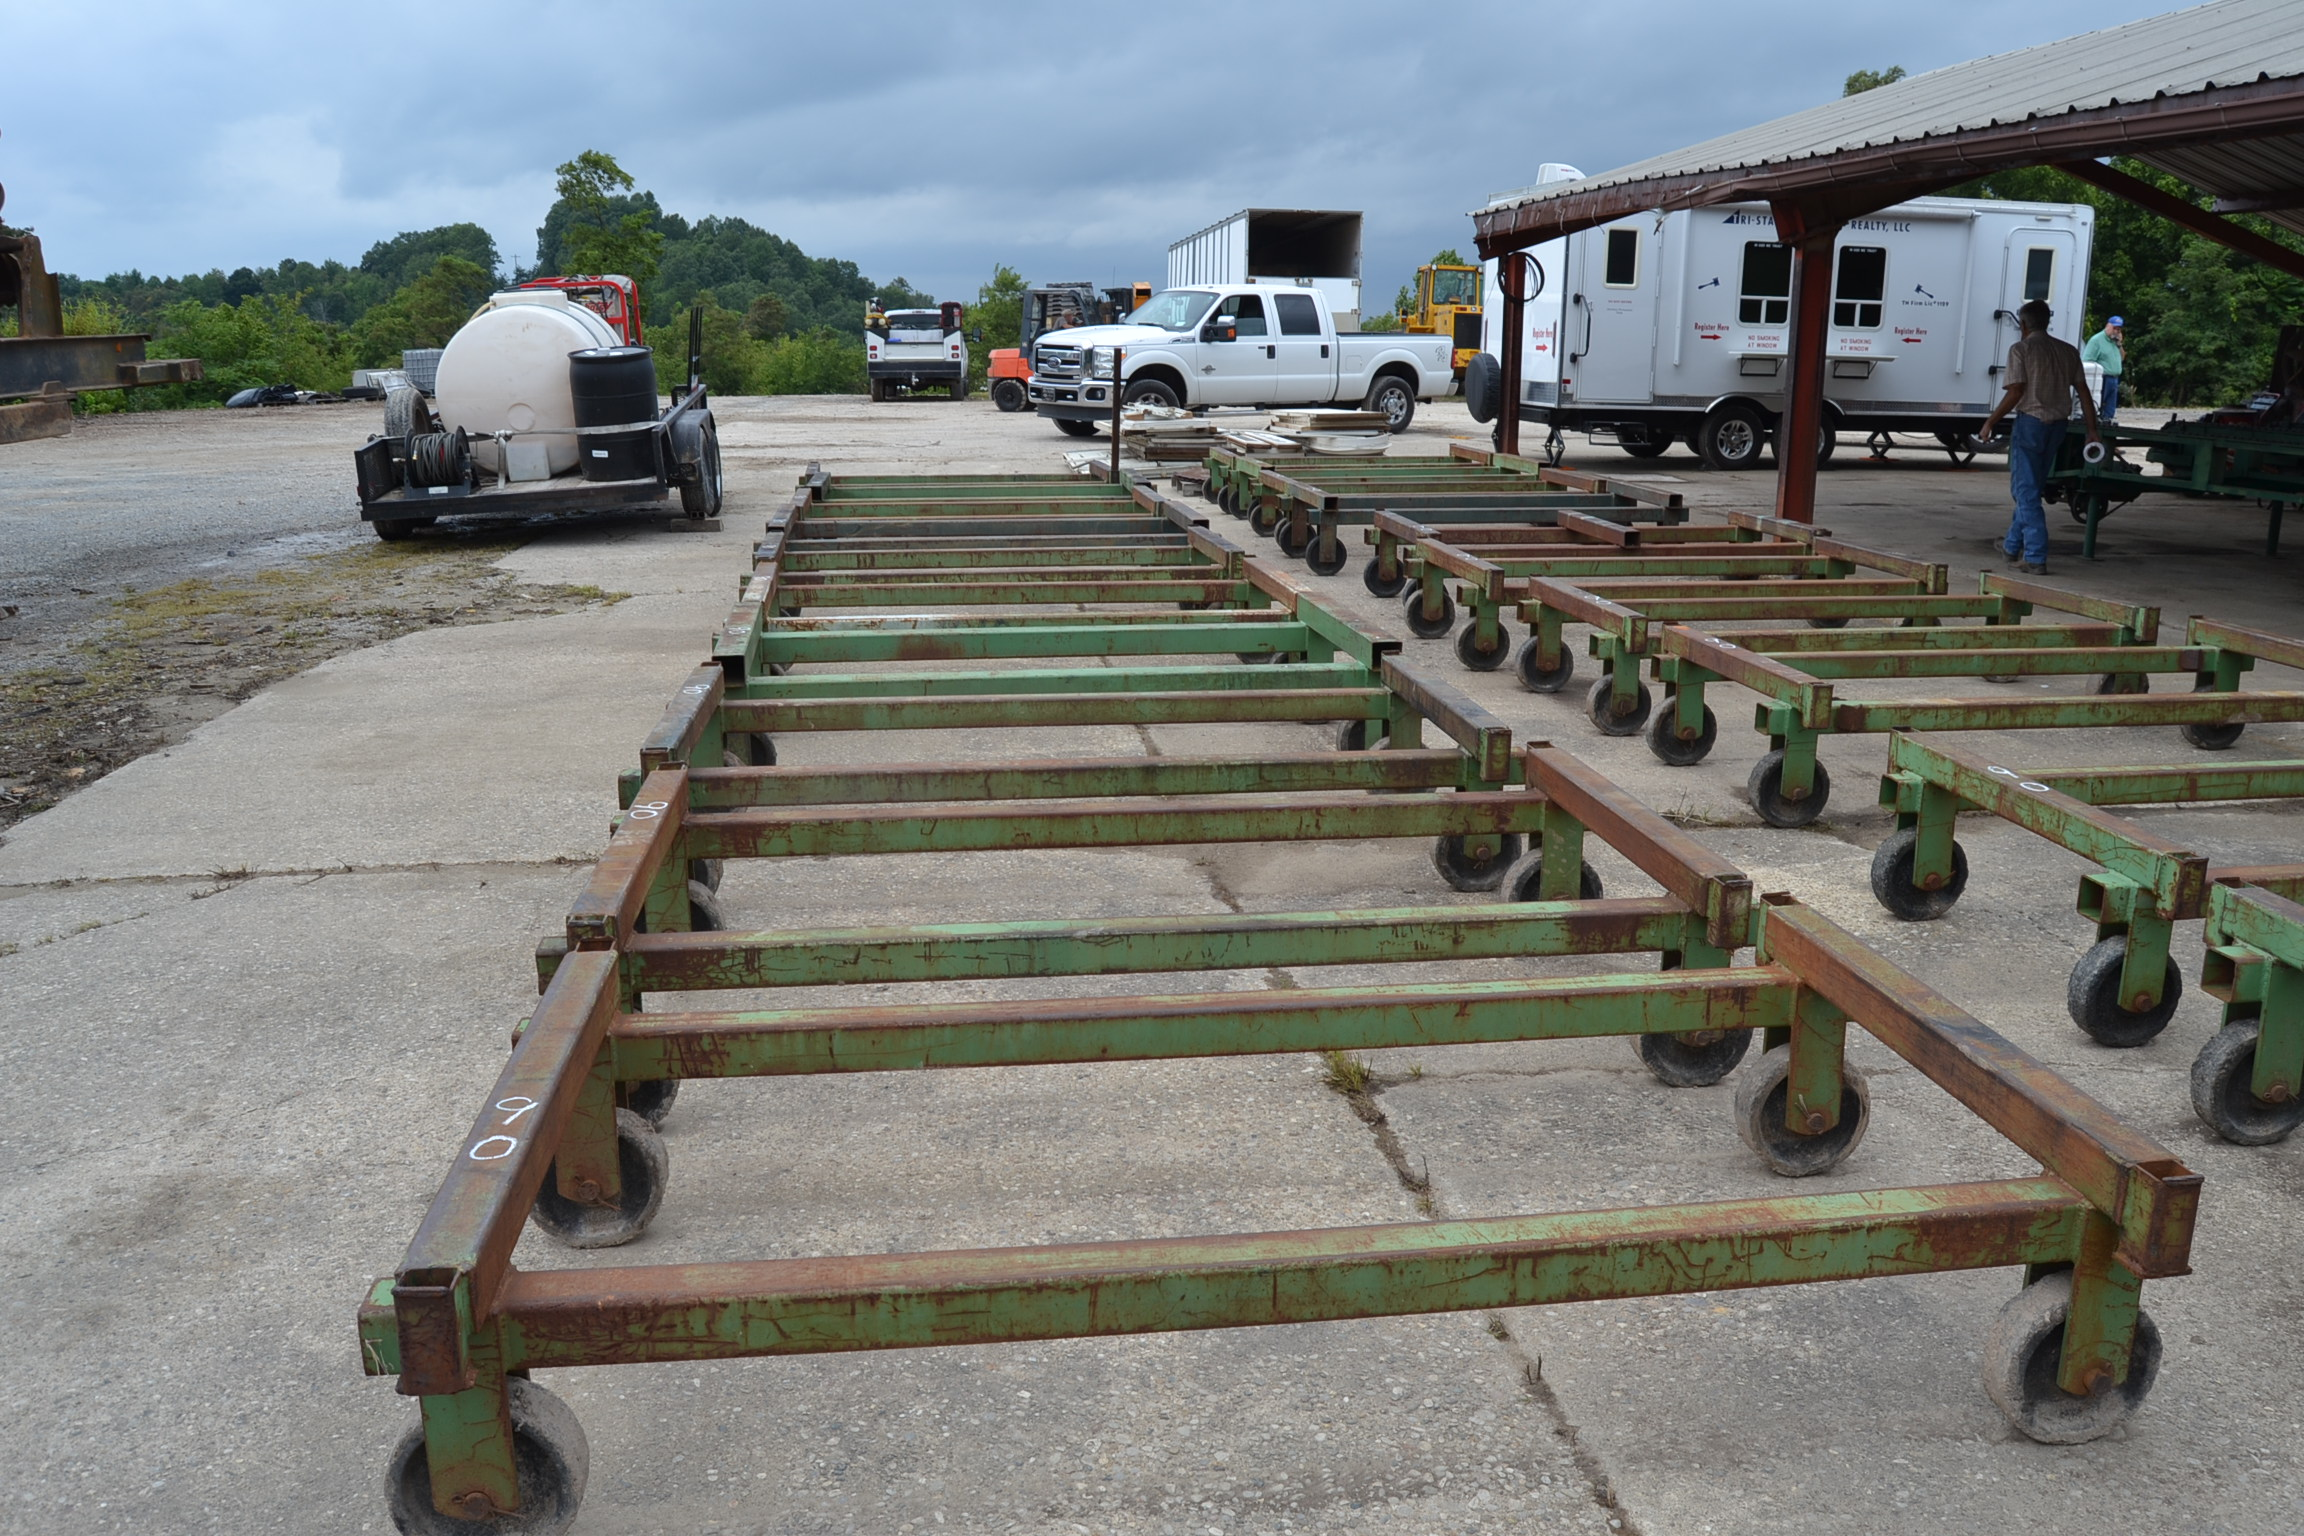 Lot 90 - 22 ALL STEEL LUMBER ROLLS OUT SELLING 1 X MONEY